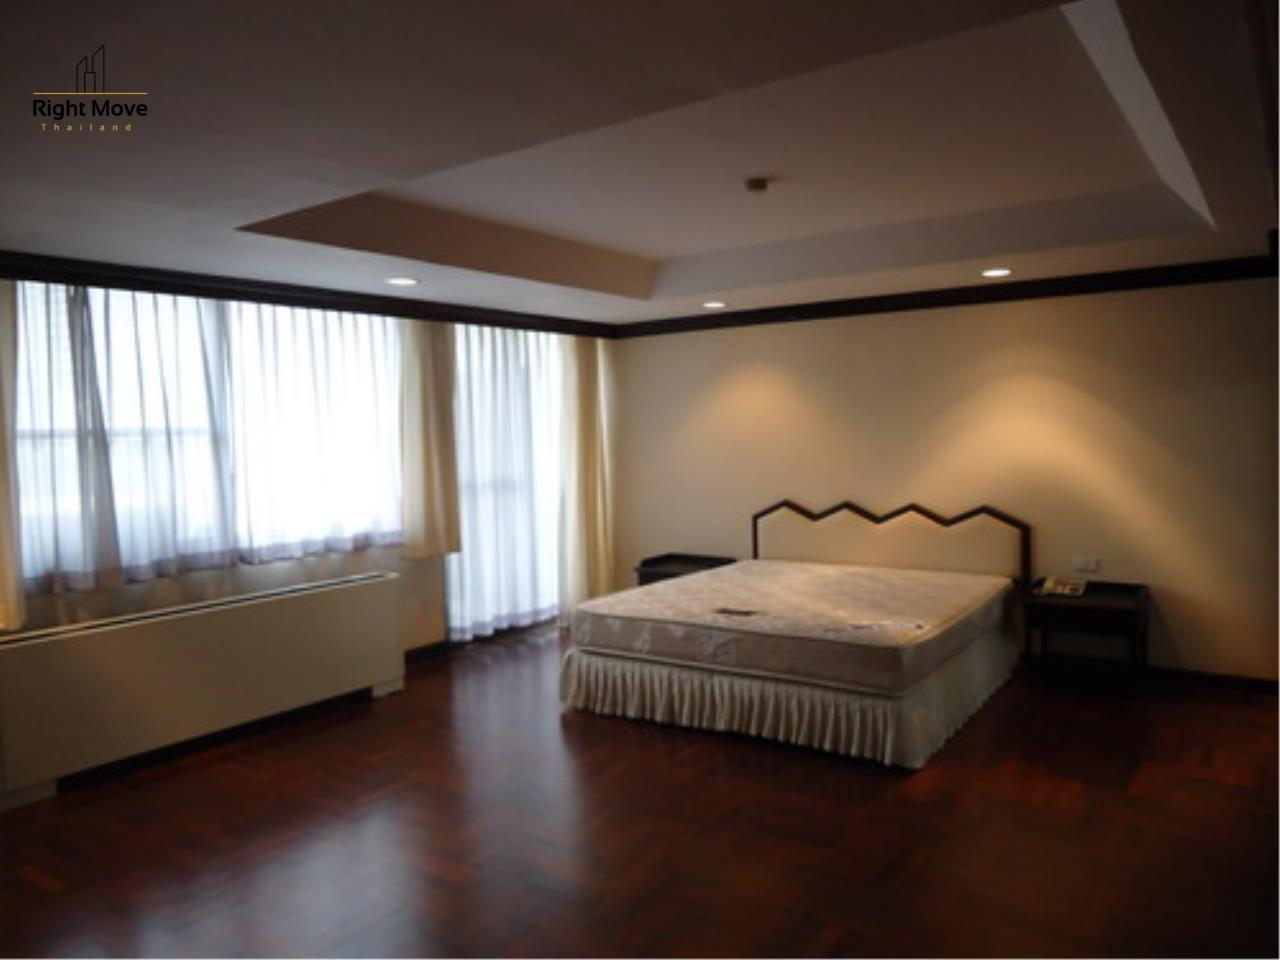 Right Move Thailand Agency's CA3559 Penthouse Duplex For Rent 150,000 THB 4+1 Bedrooms 600 Sqm 5